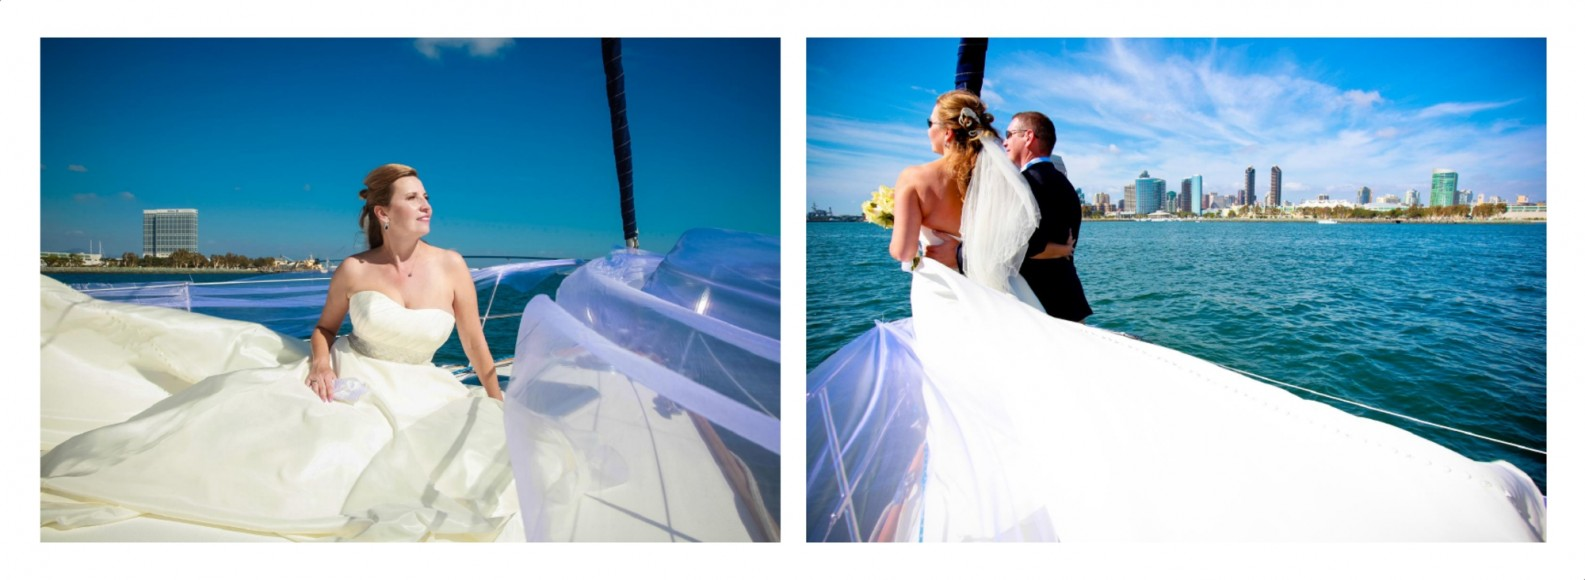 Laura and Davids Wedding Book - San Diego Yacht Wedding by Wedding Photographers Andrew Abouna - Pages 26-27